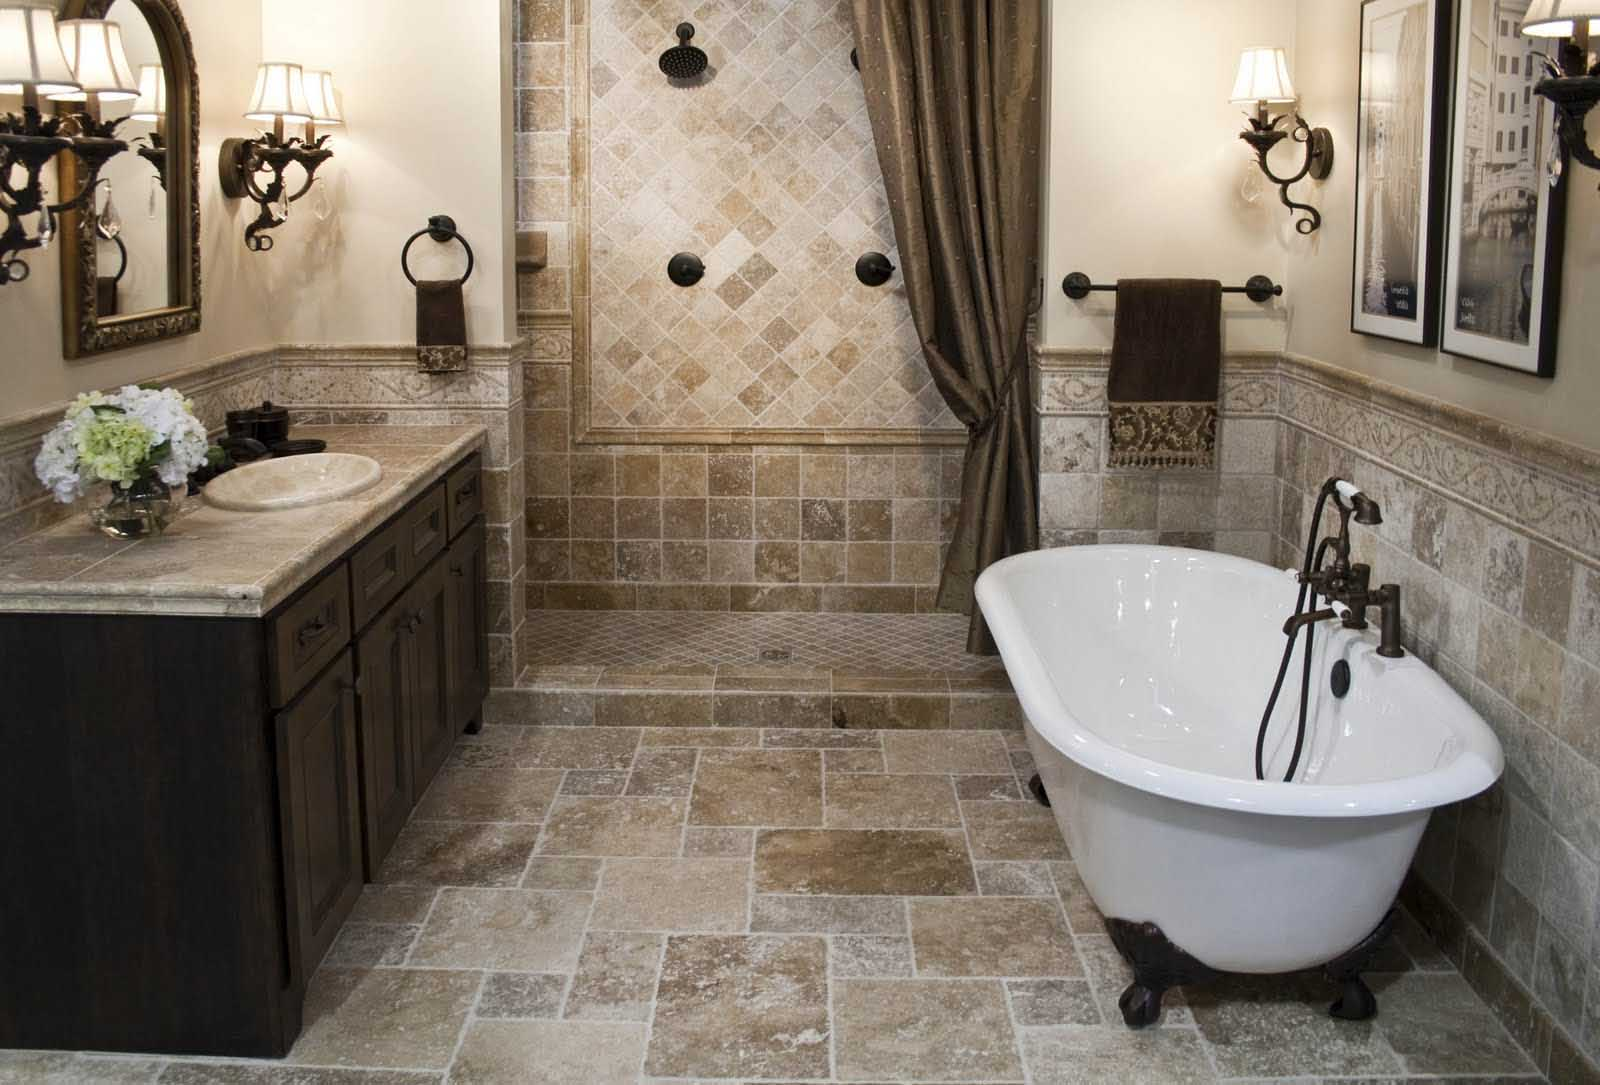 Traditional bathroom ideas - Appealing Interior Design Bathroom Ideas